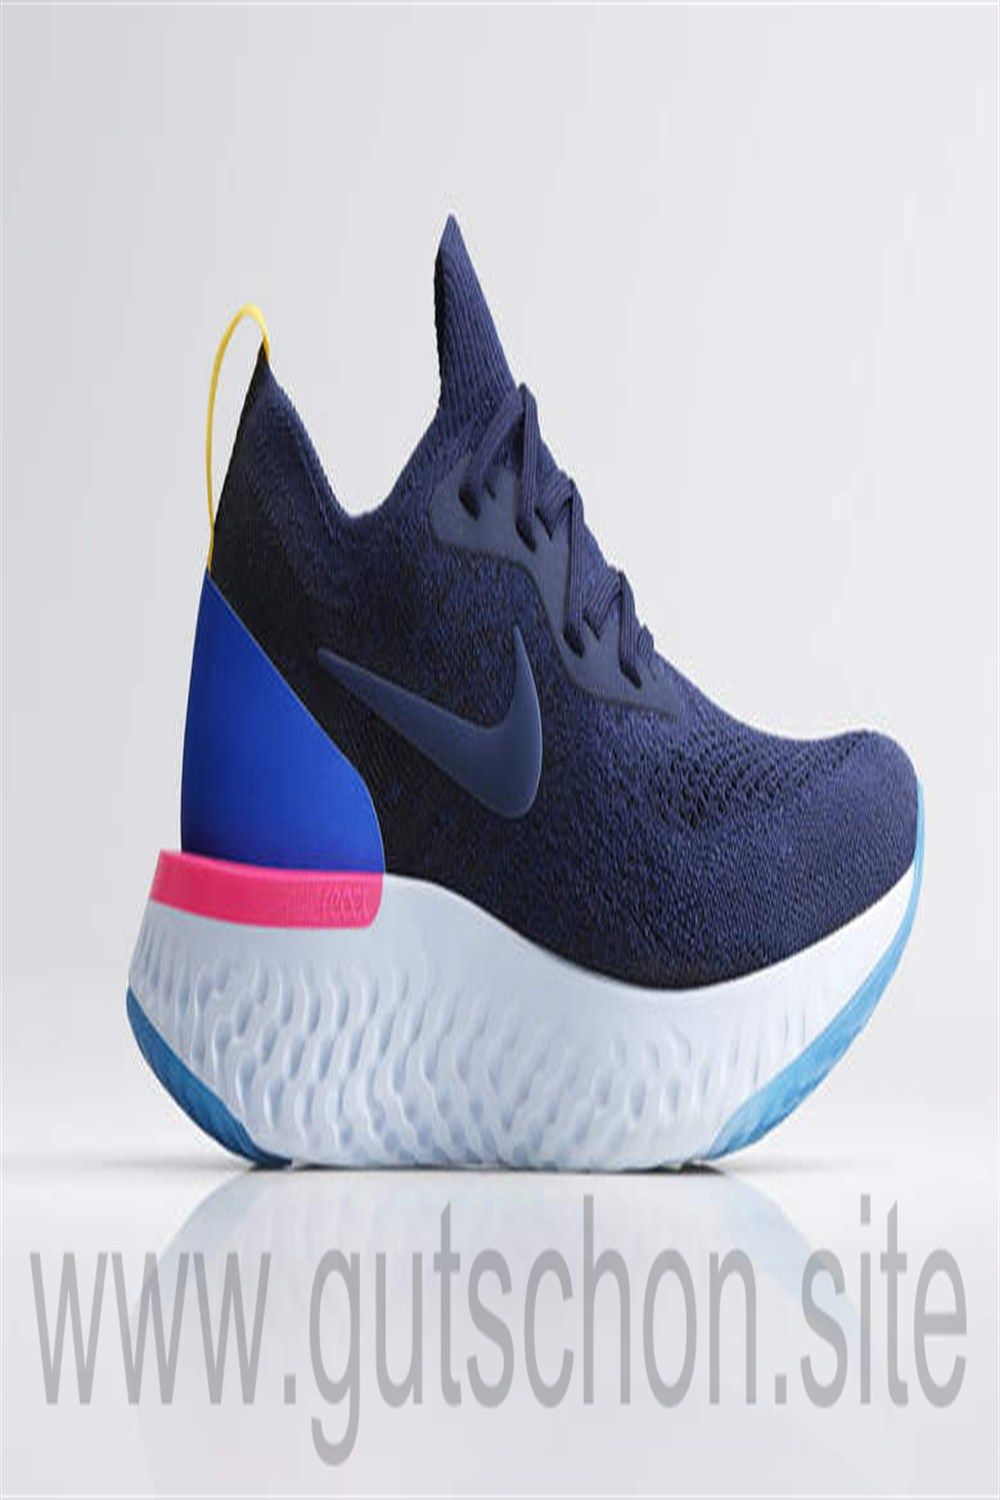 new shoes 2020